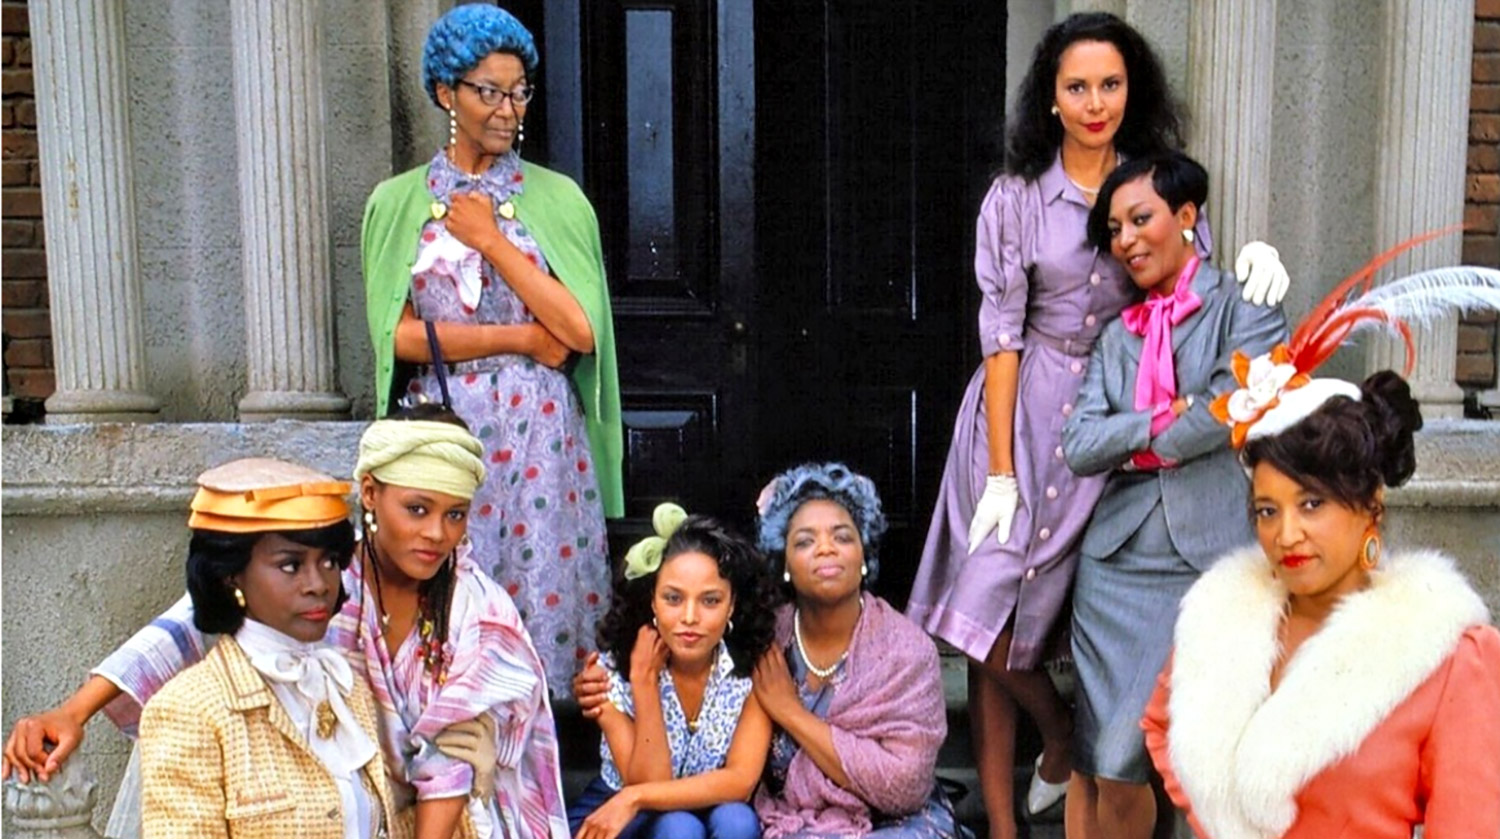 The Women of Brewster Place, 1989